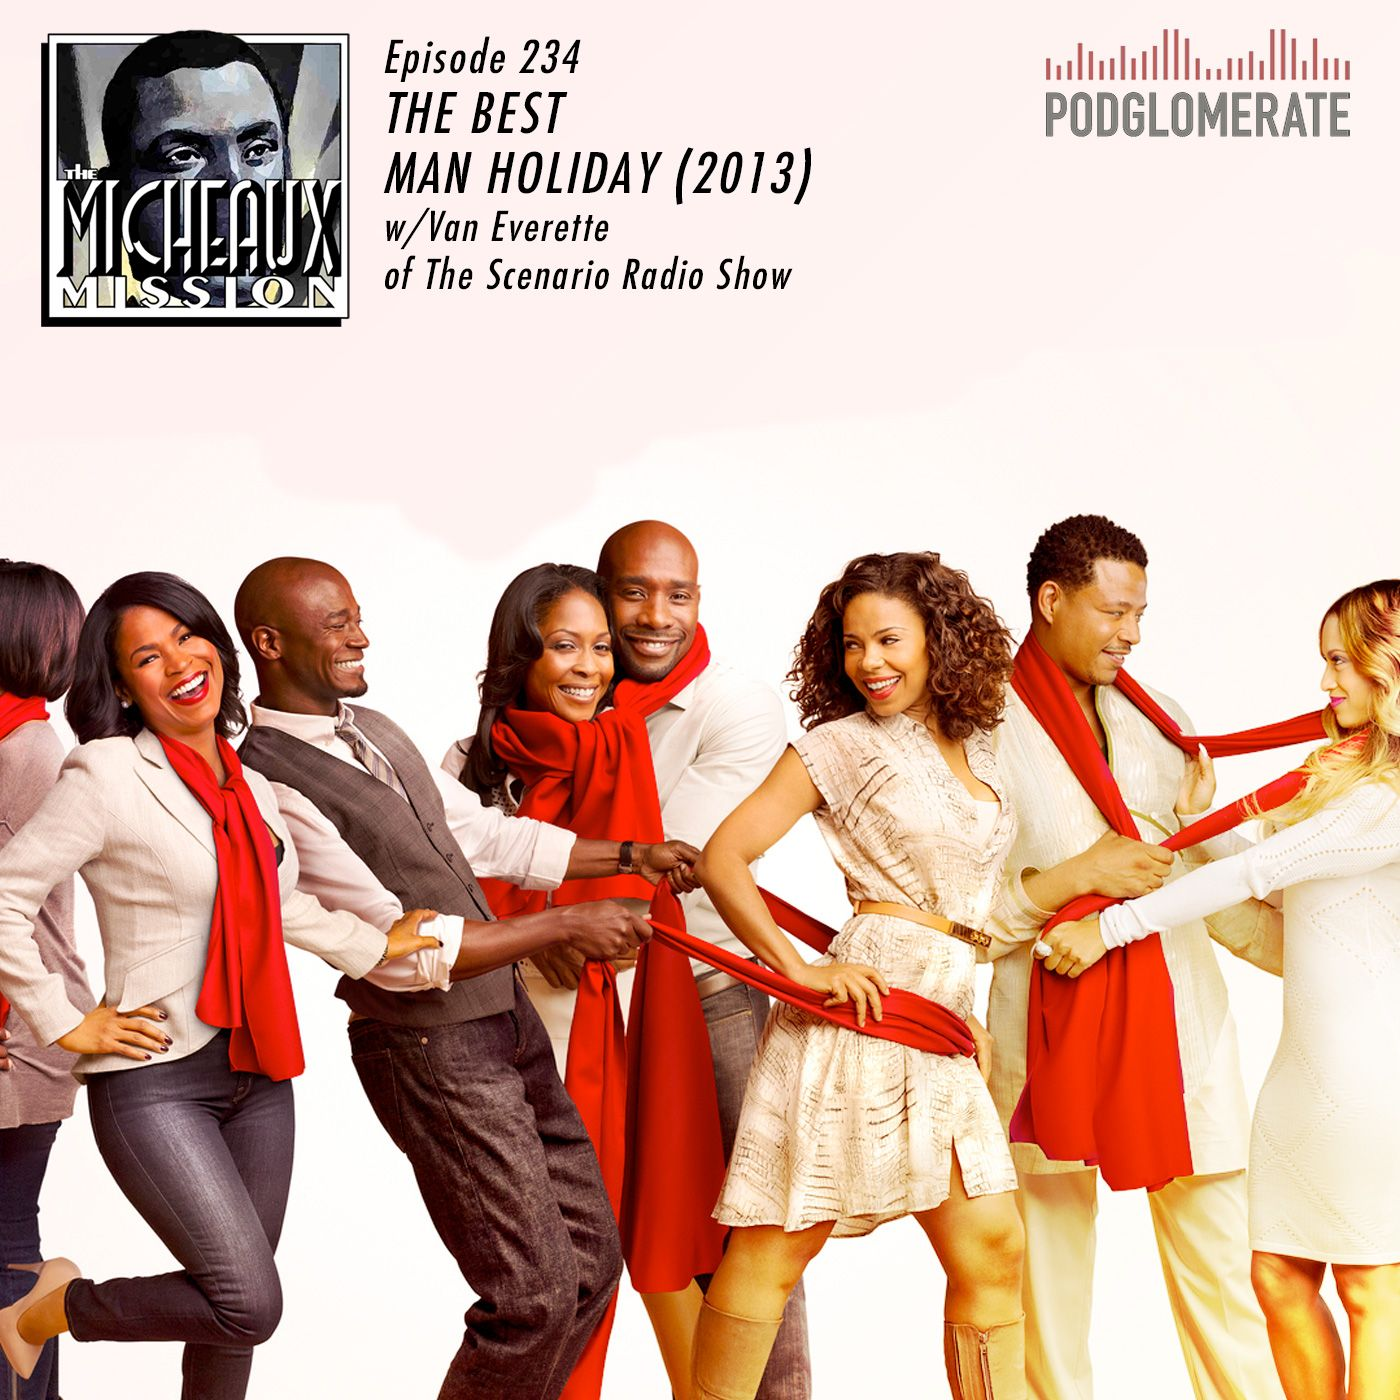 The Best Man Holiday (2013) with Van Everette